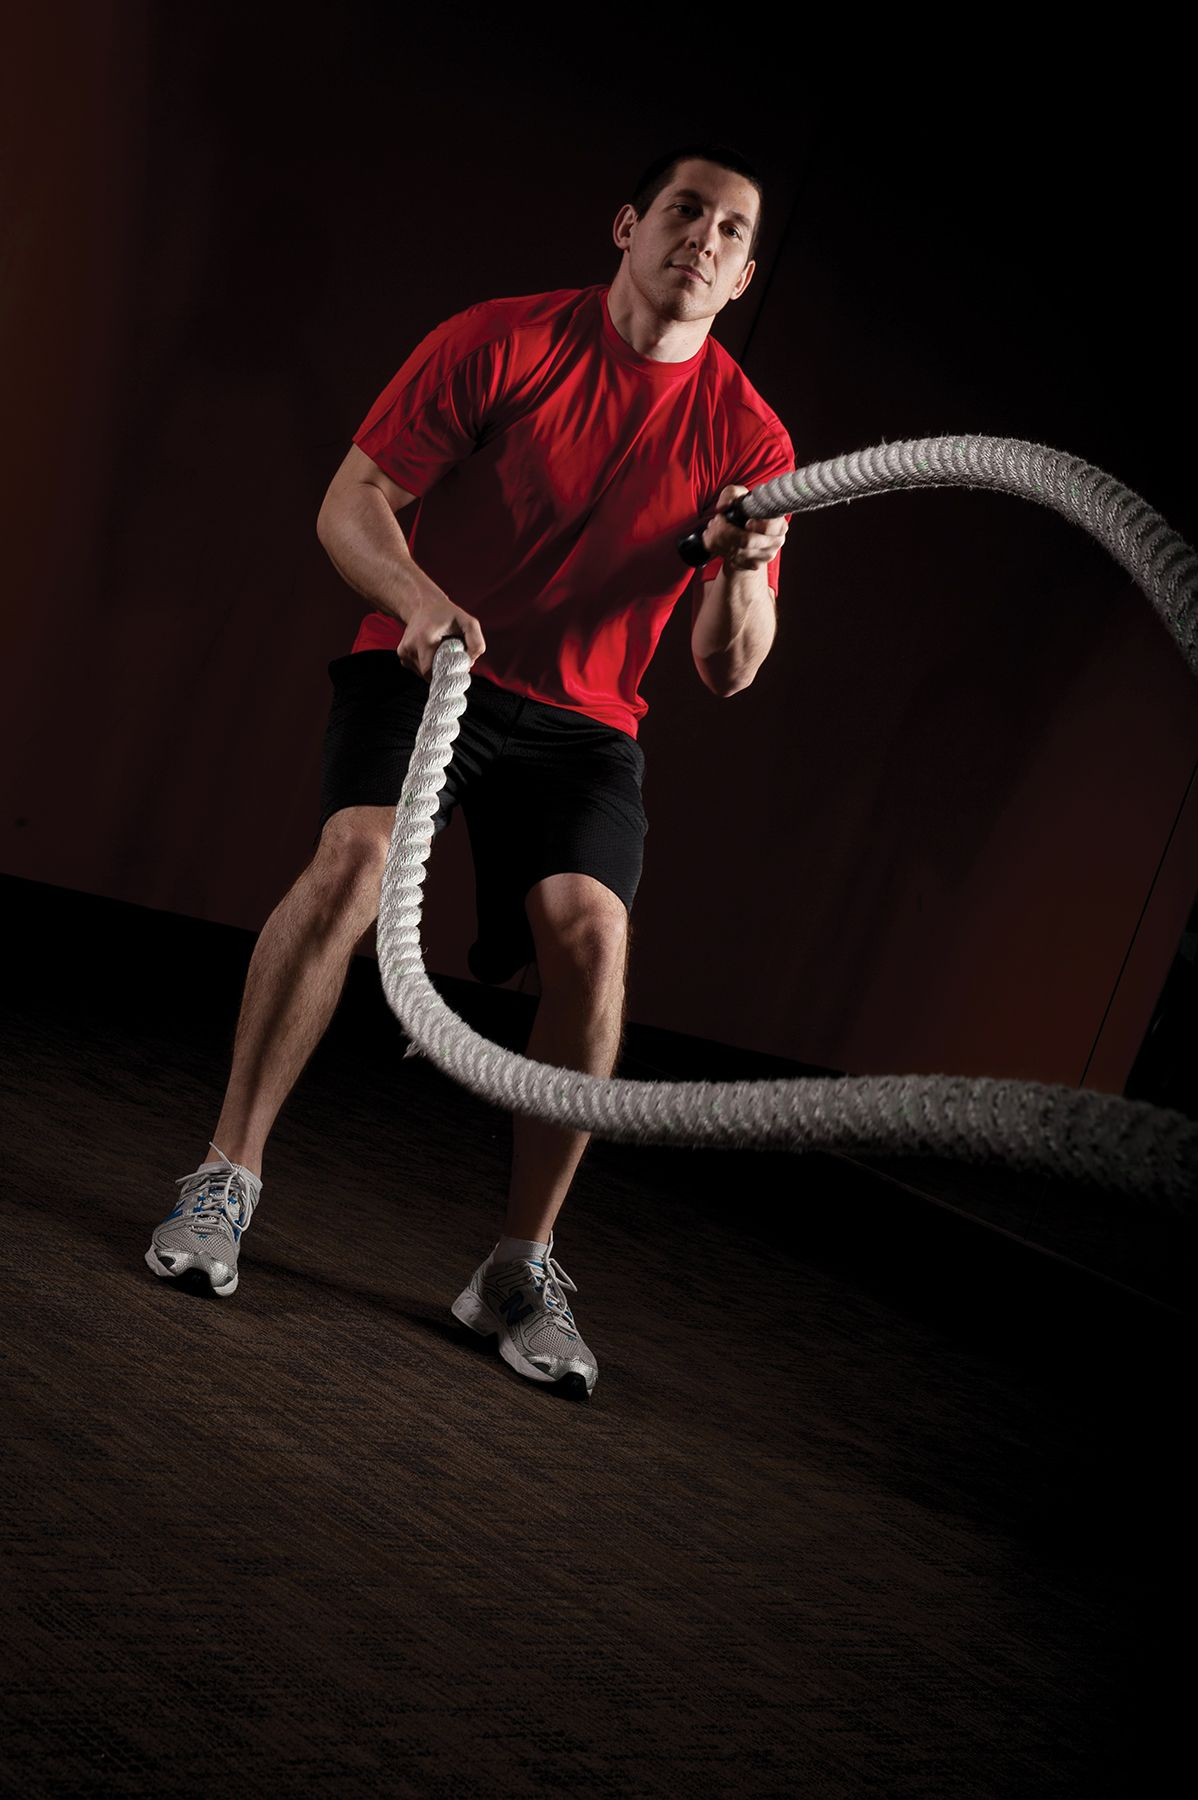 Functional training at sports clubla photo courtesy of